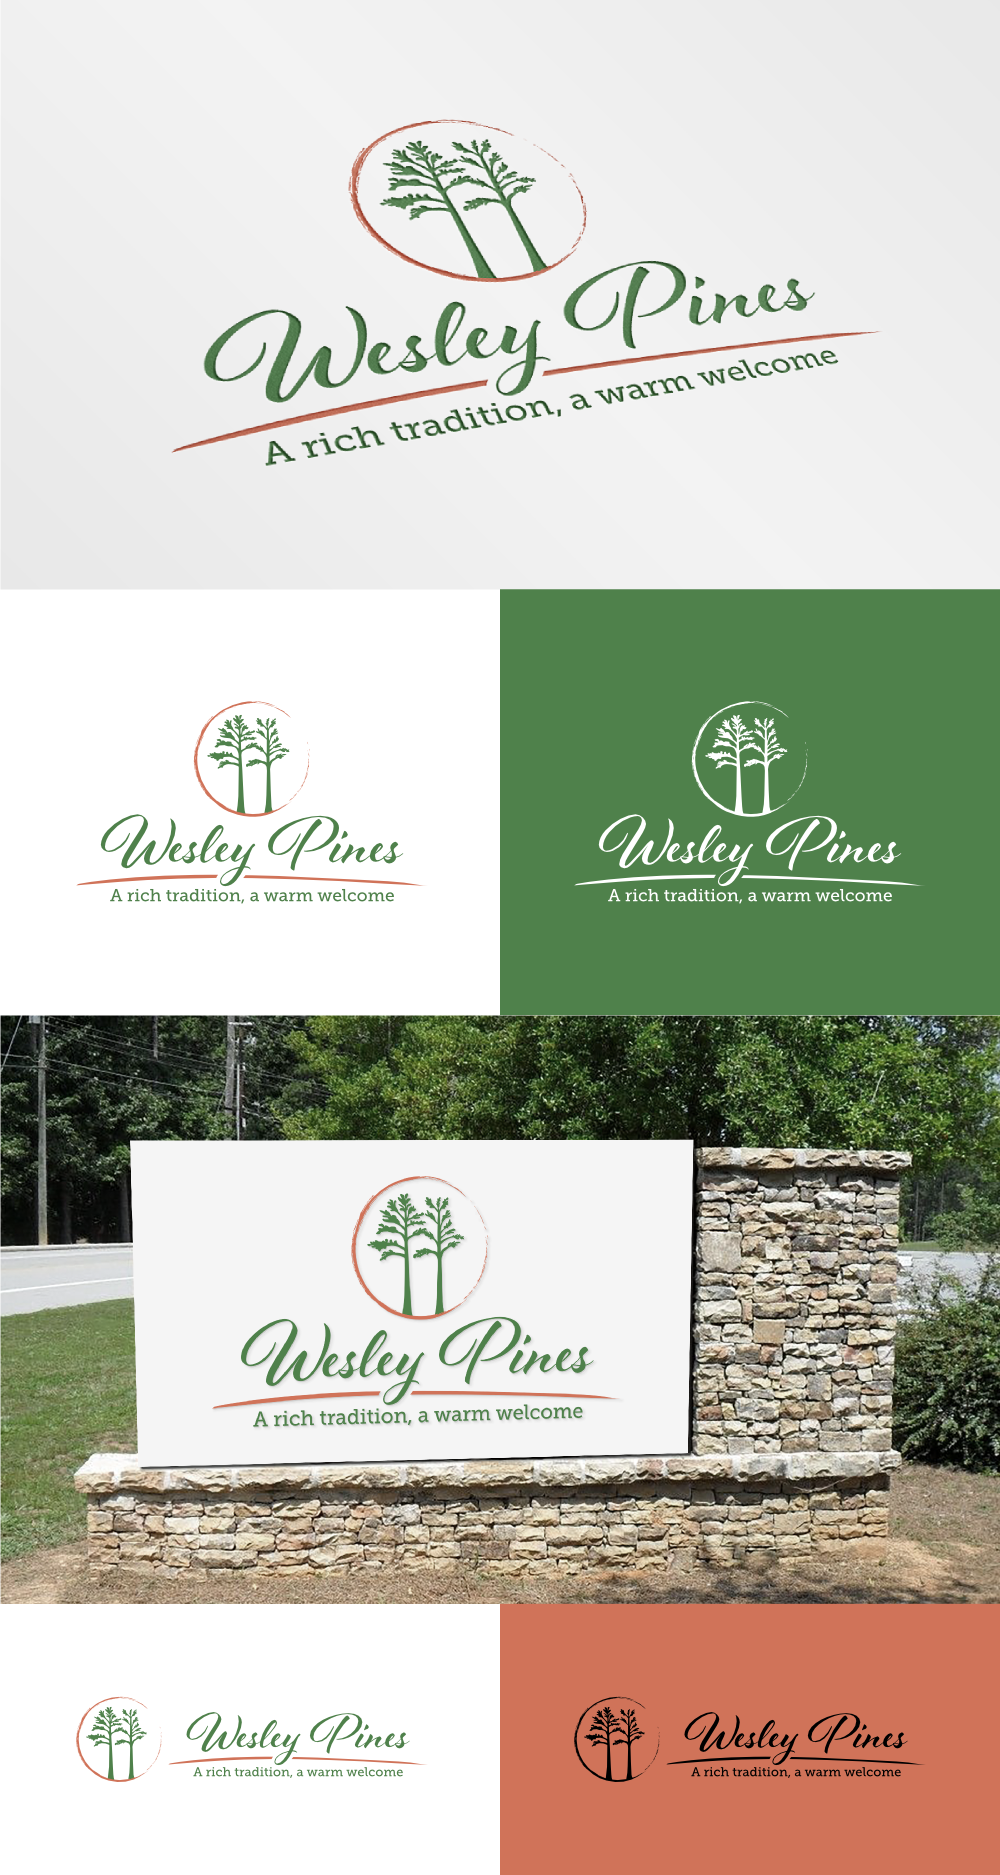 Wesley Pines - looking for a logo that says Boom Yay.